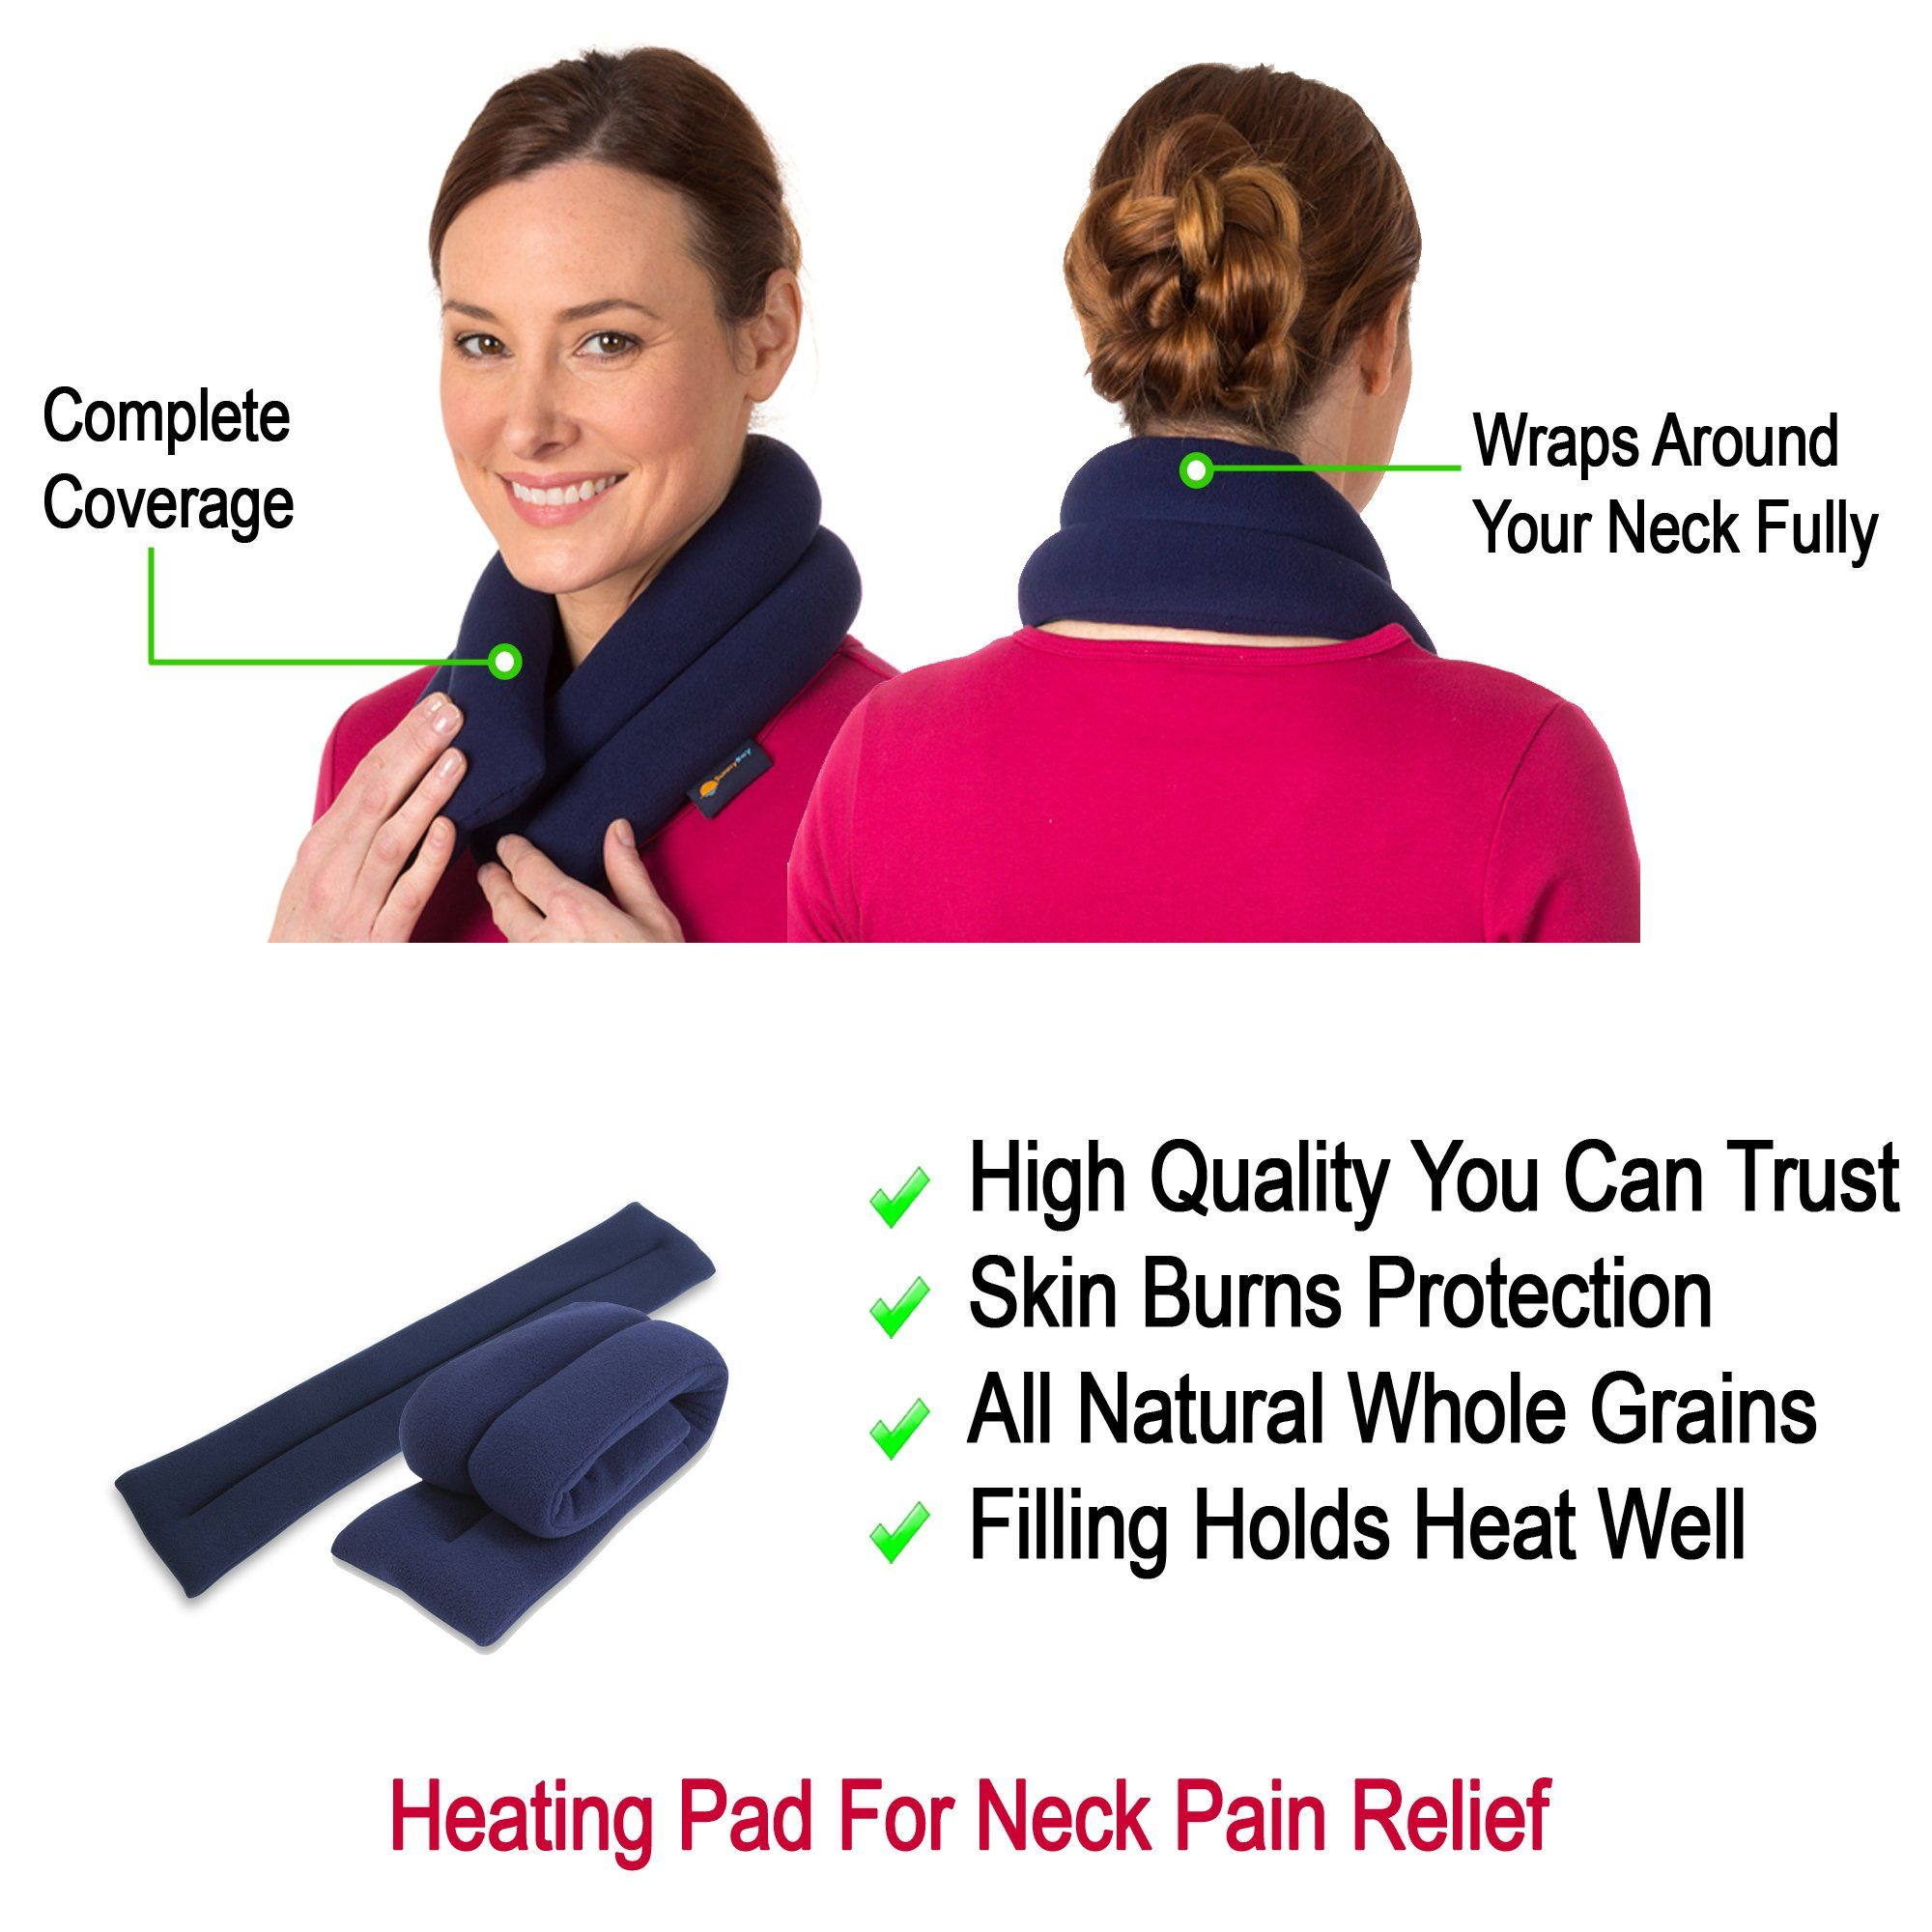 Microwave Heating Pad For Neck Pain Relief Extralong Flax Seeds Bean Bag Muscle Hot Beanbagideas